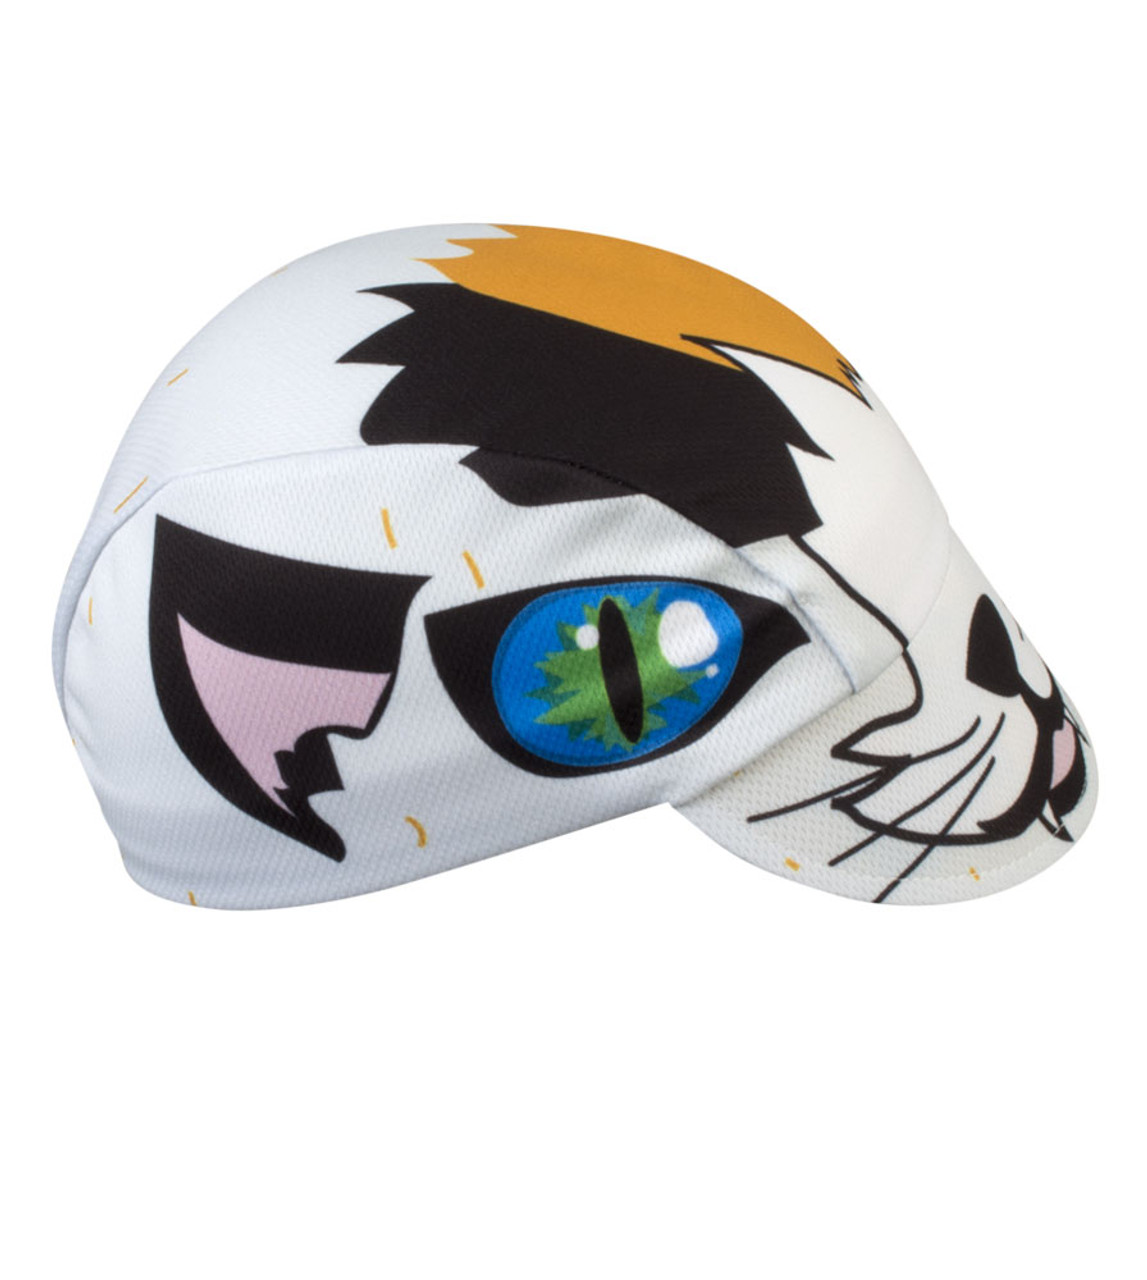 Aero Tech Rush Cycling Caps Alley Cat Made In Usa